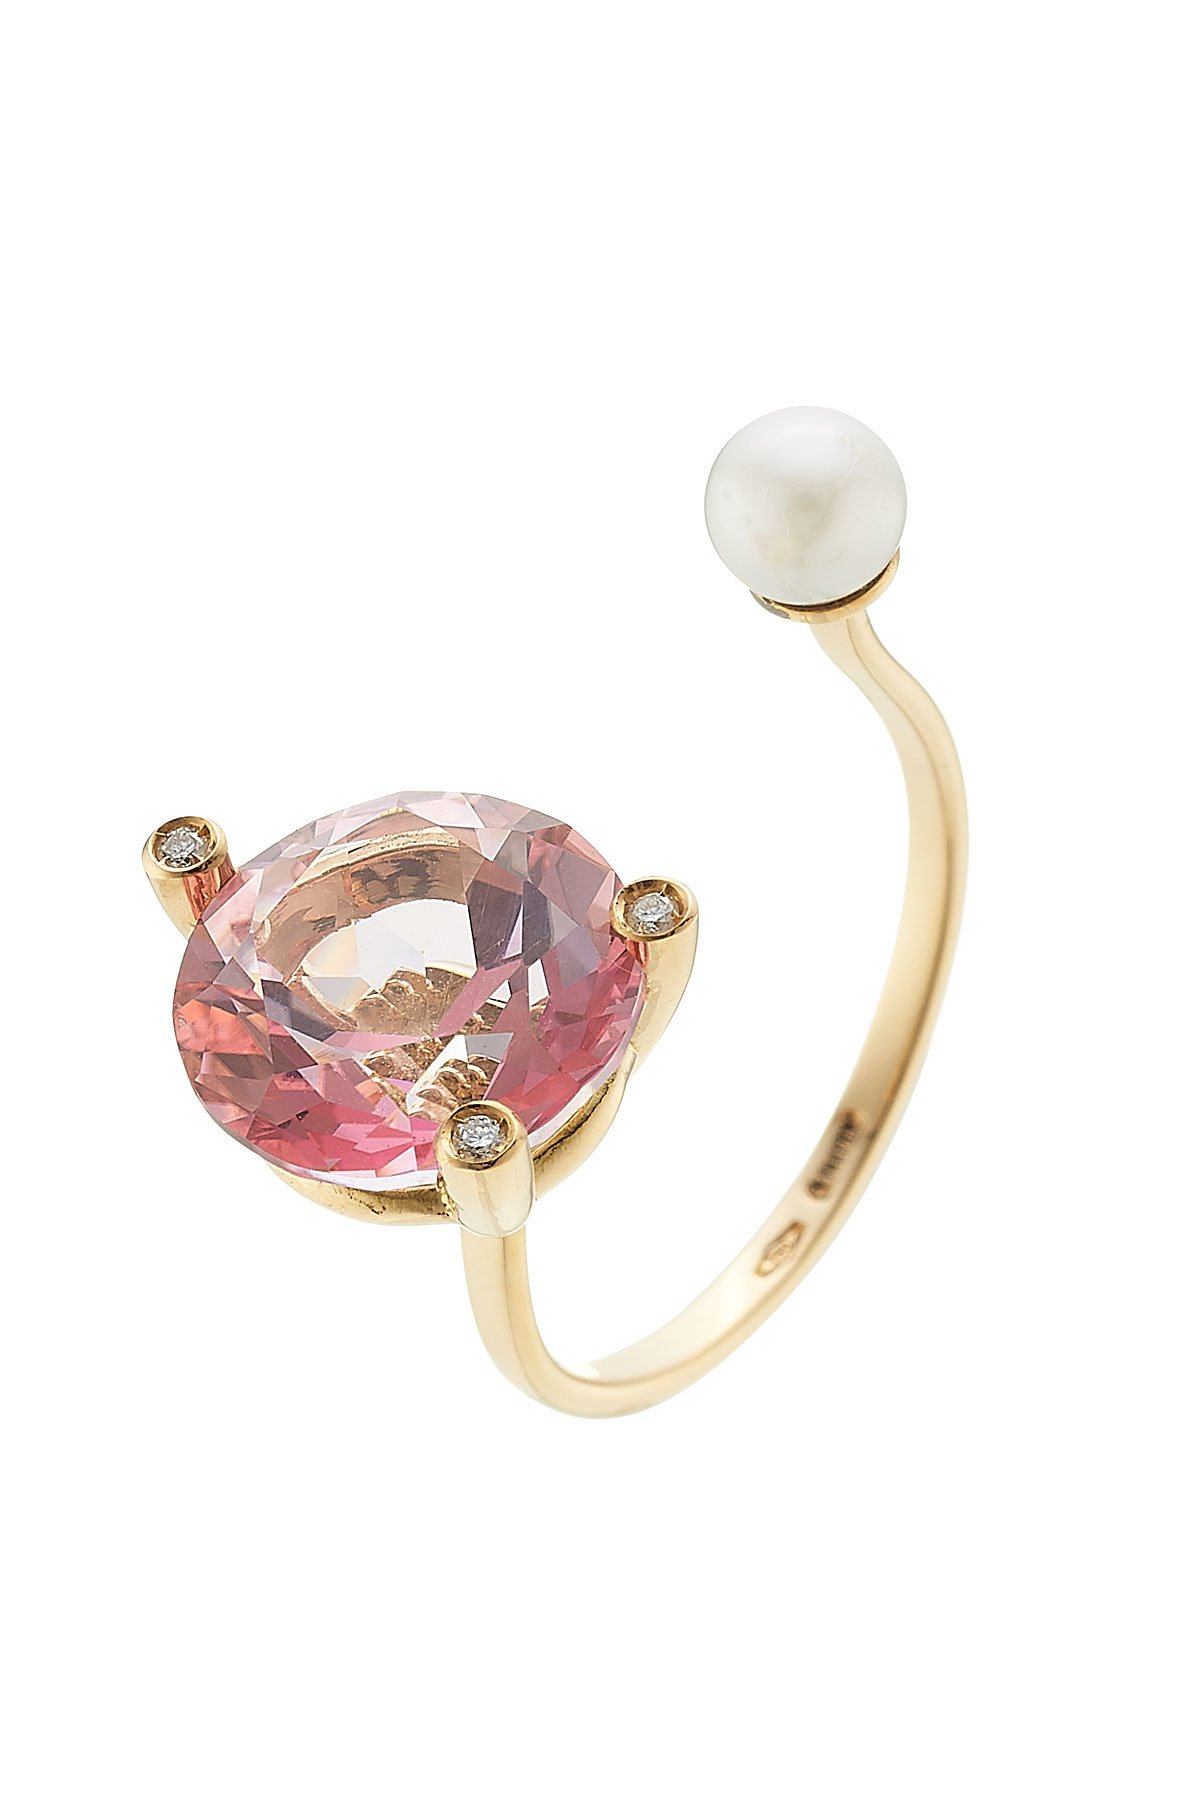 18kt Gold Ring with Pink Topaz, White Diamonds and Pearl Gr. One Size